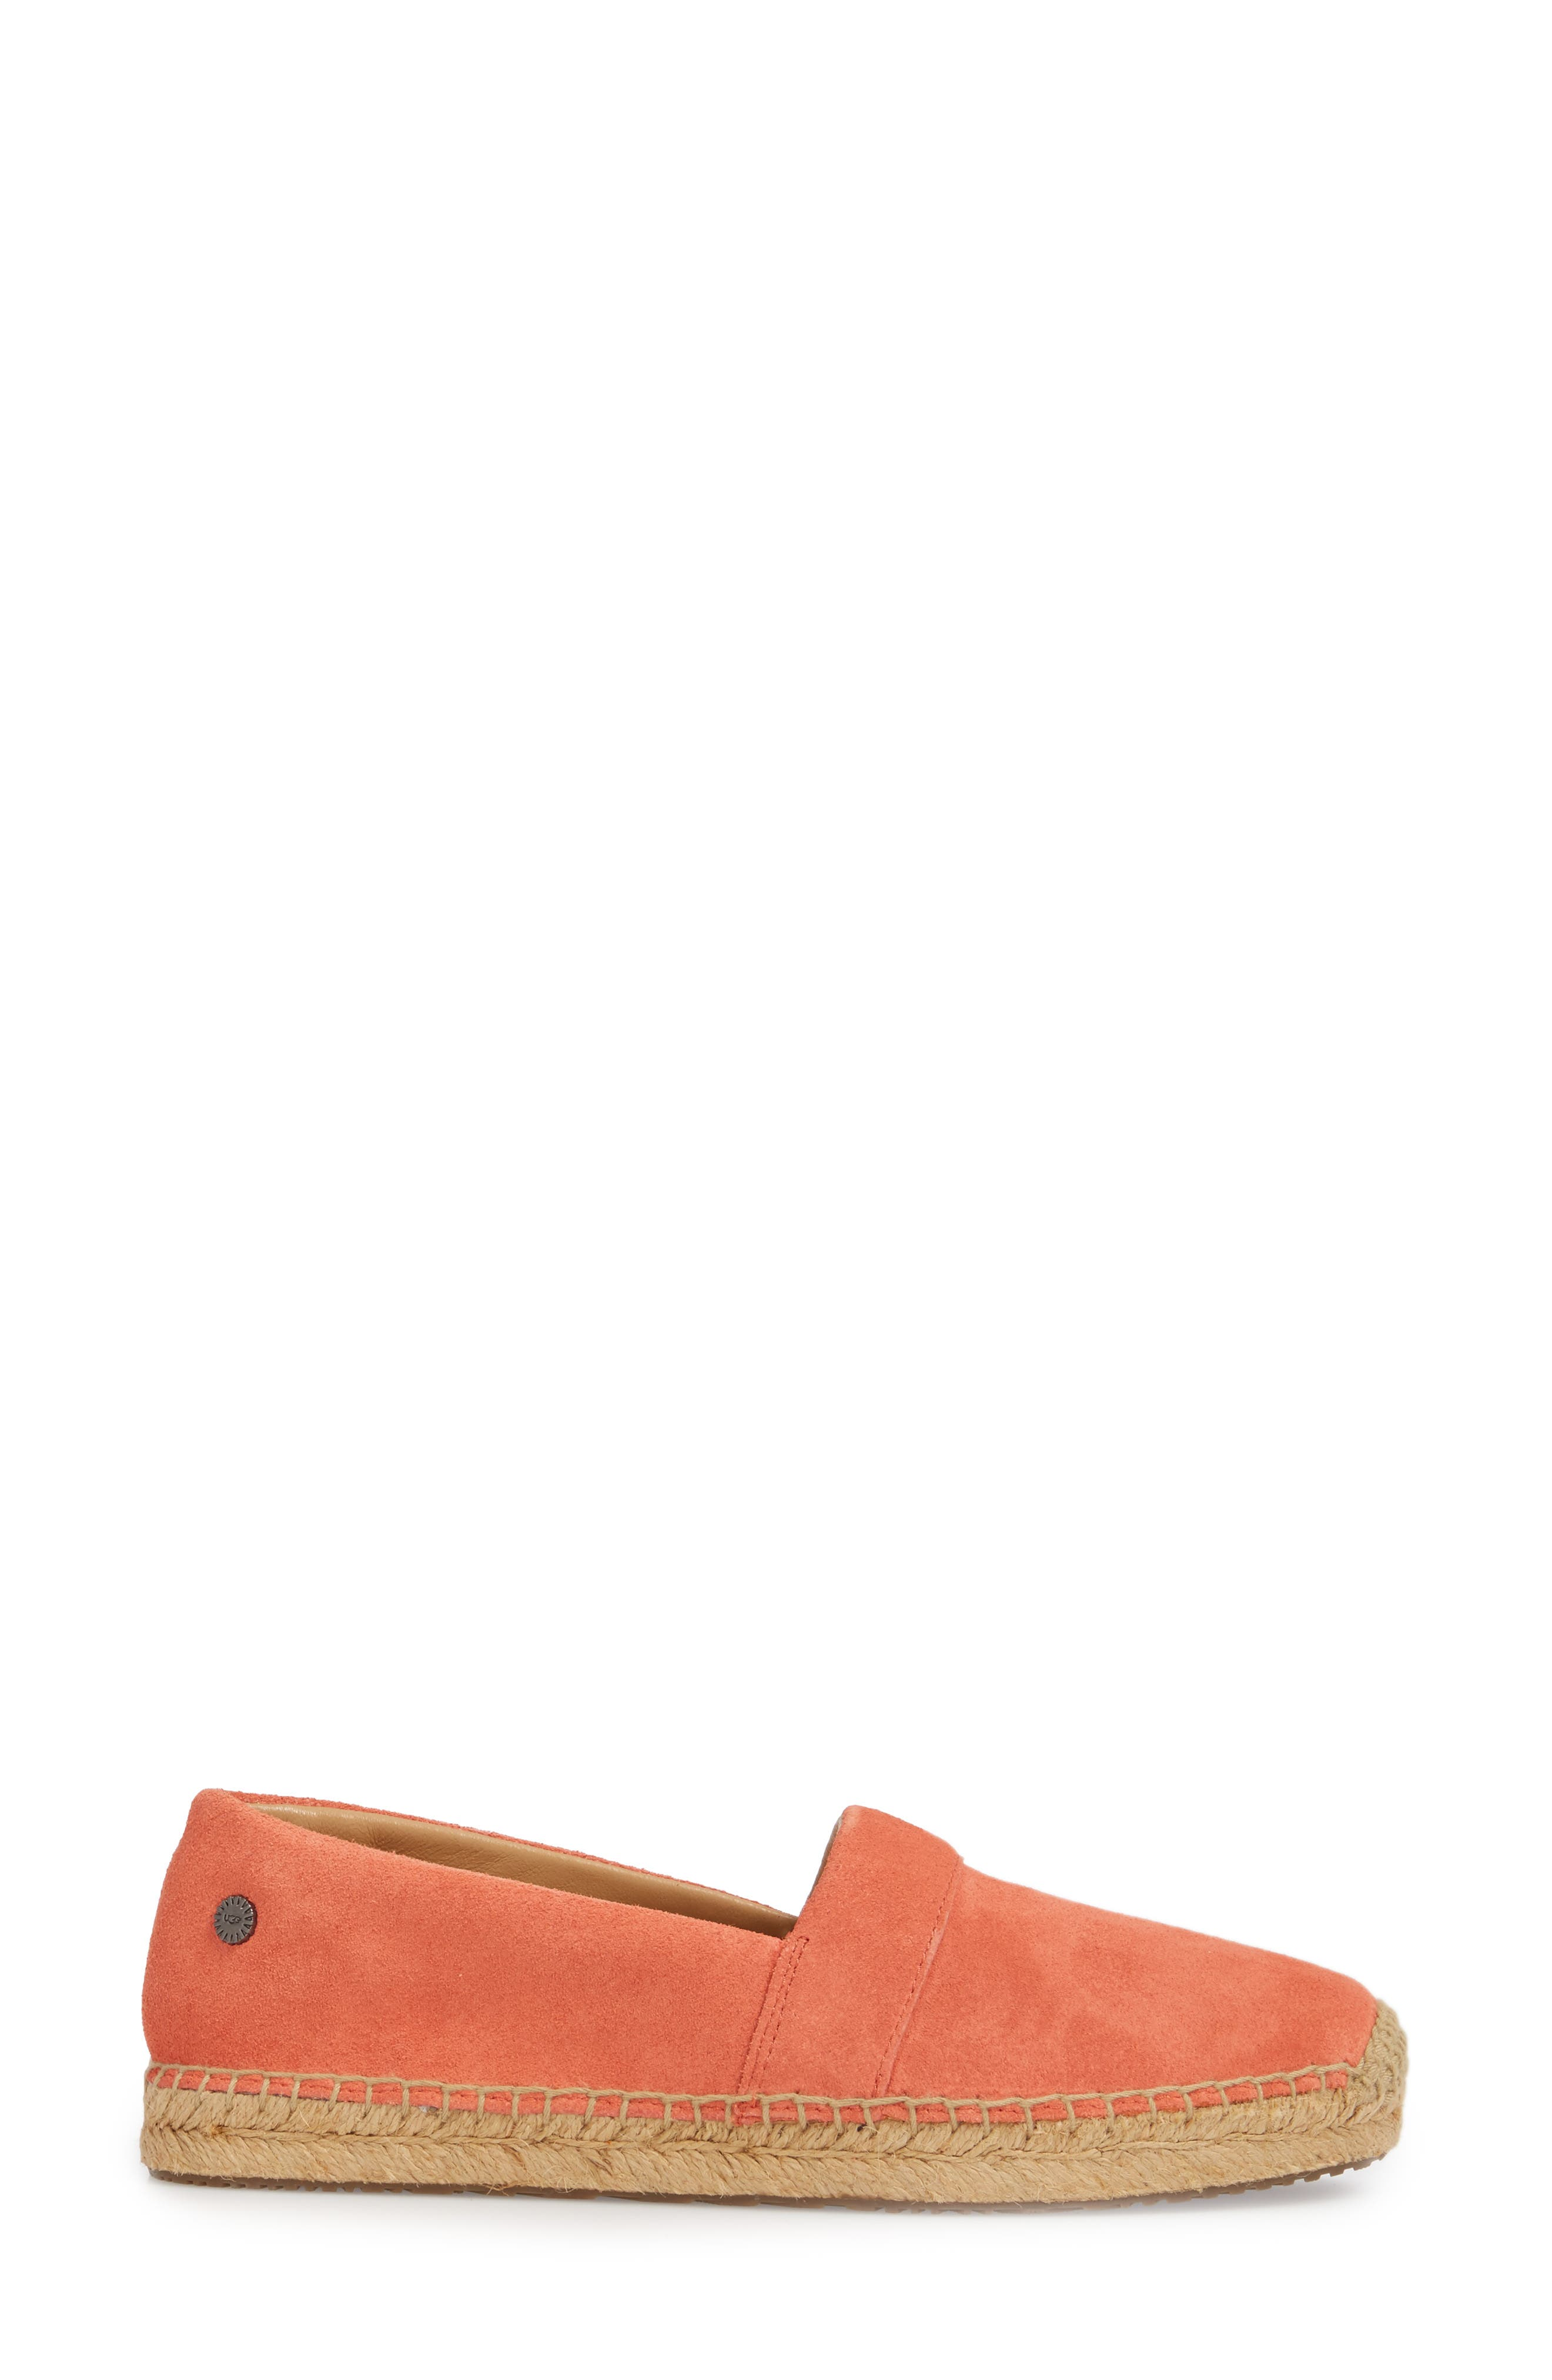 Reneda Espadrille Slip-On,                             Alternate thumbnail 3, color,                             Fusion Coral Suede